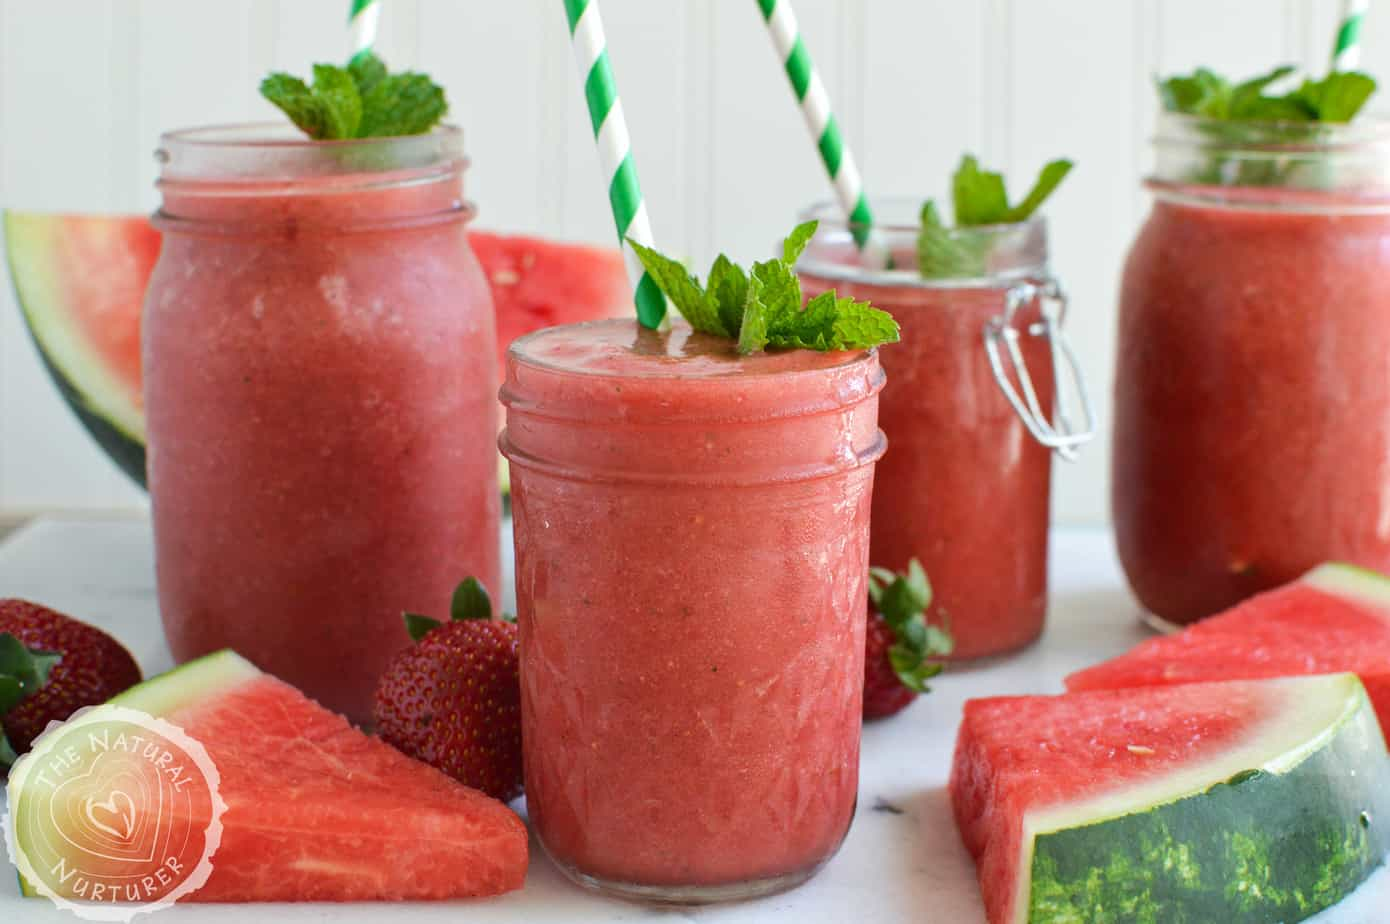 Closeup of the Watermelon Mint Slushies served in cute little jars with striped straws